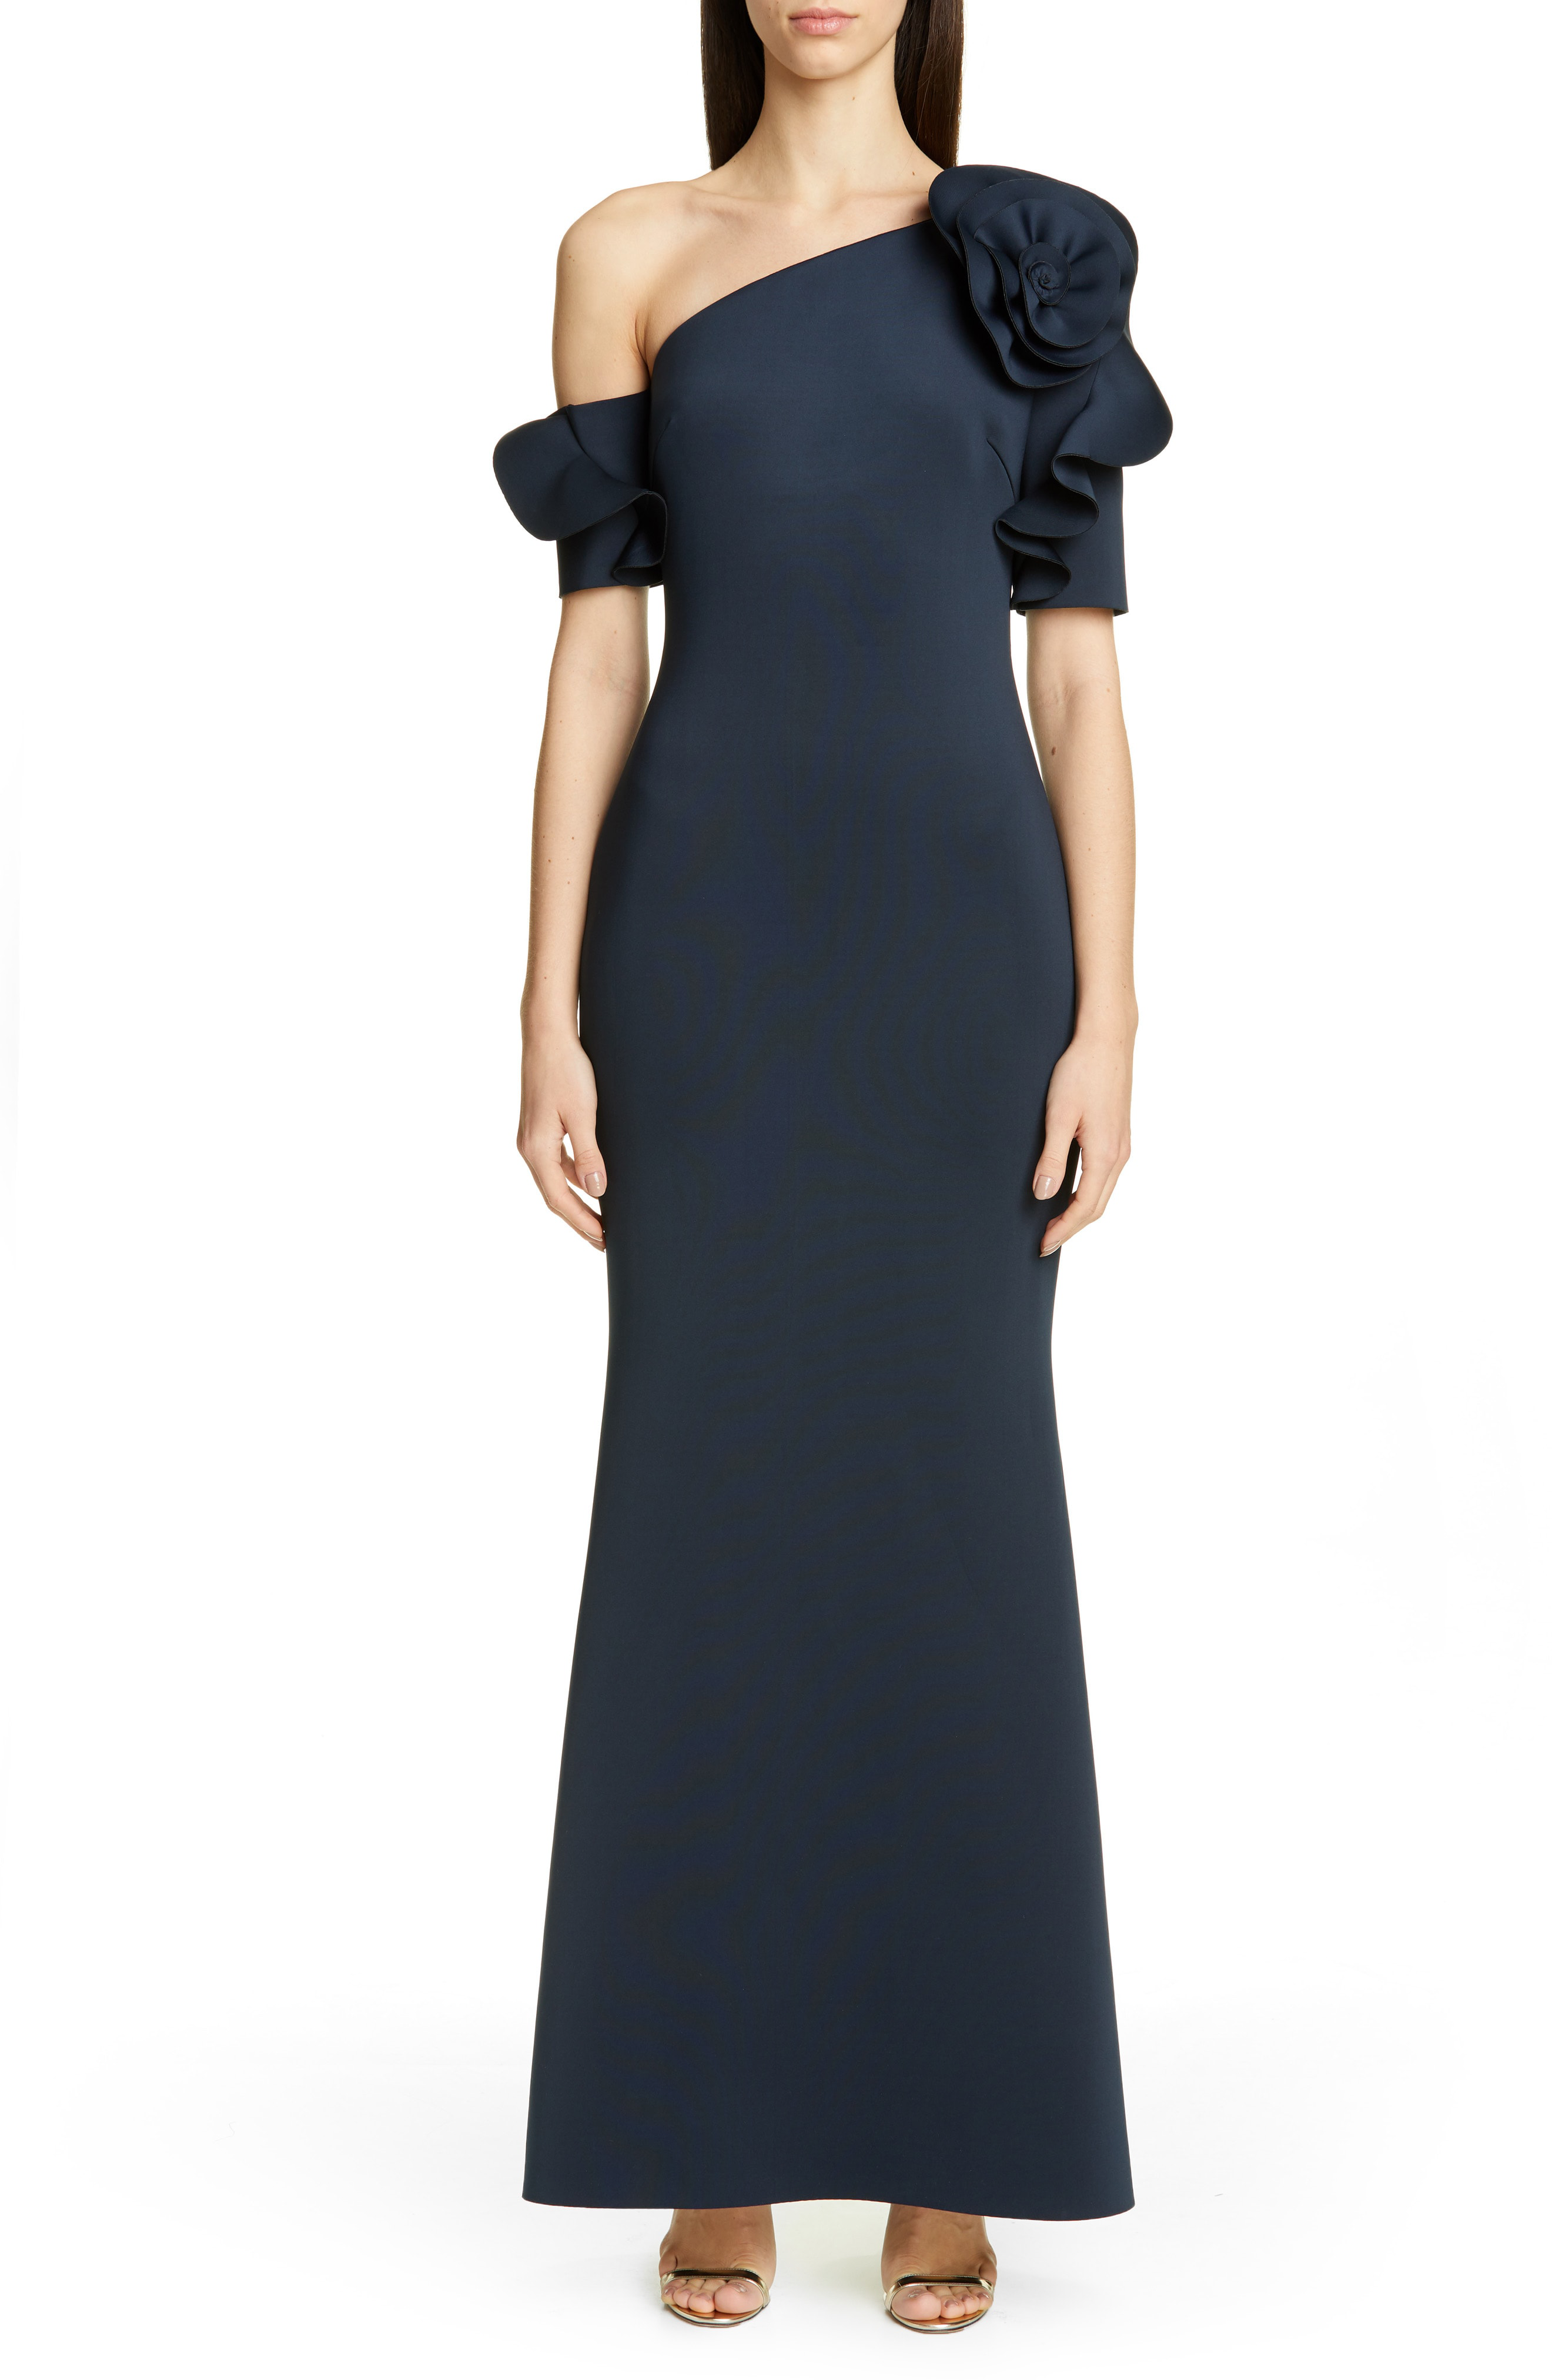 359ce27bf45 Badgley Mischka One-Shoulder Trumpet Evening Dress In Navy